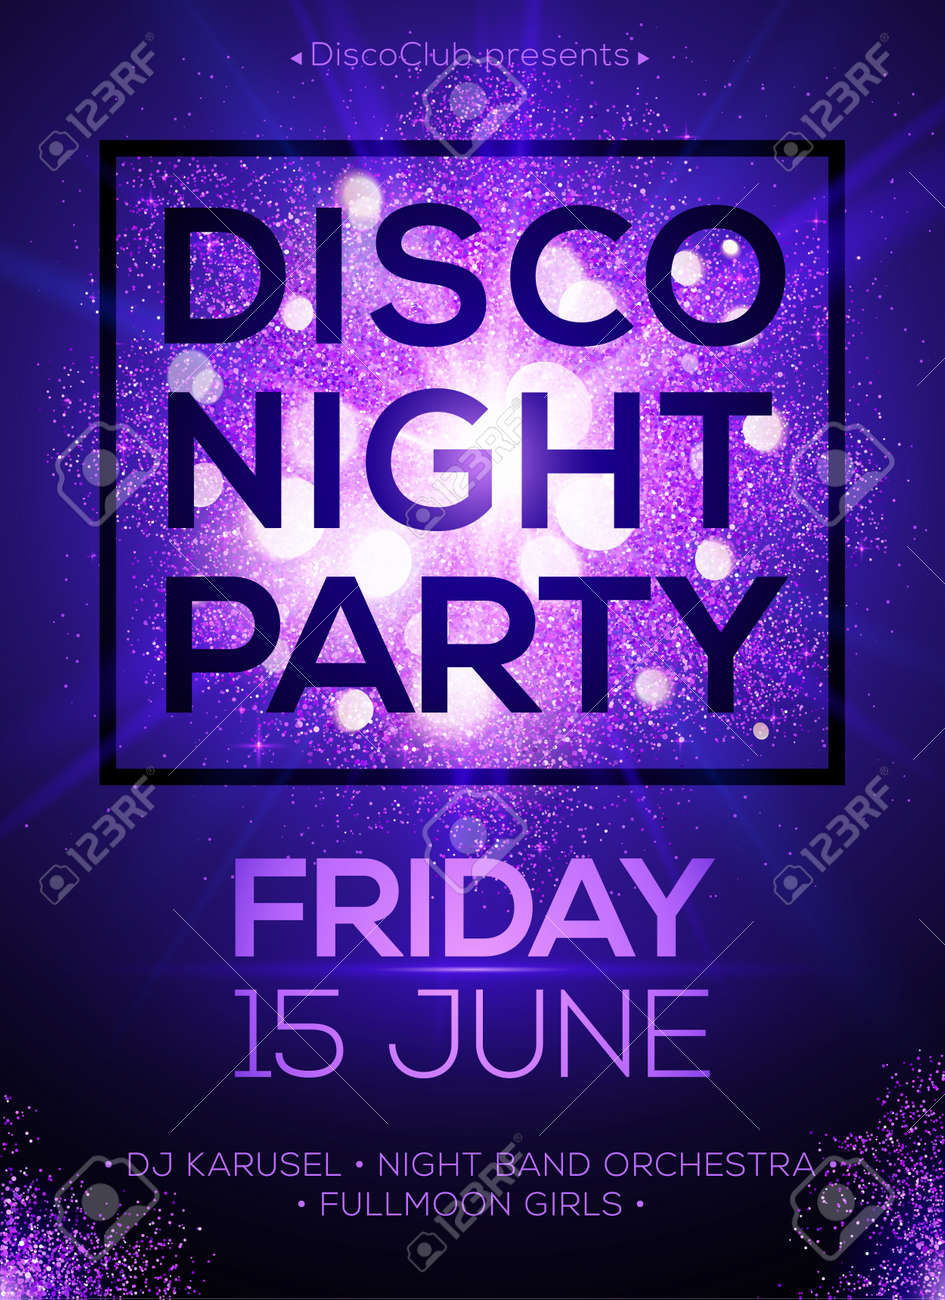 Disco night party vector poster template with shining violet spotlights background - 50424636